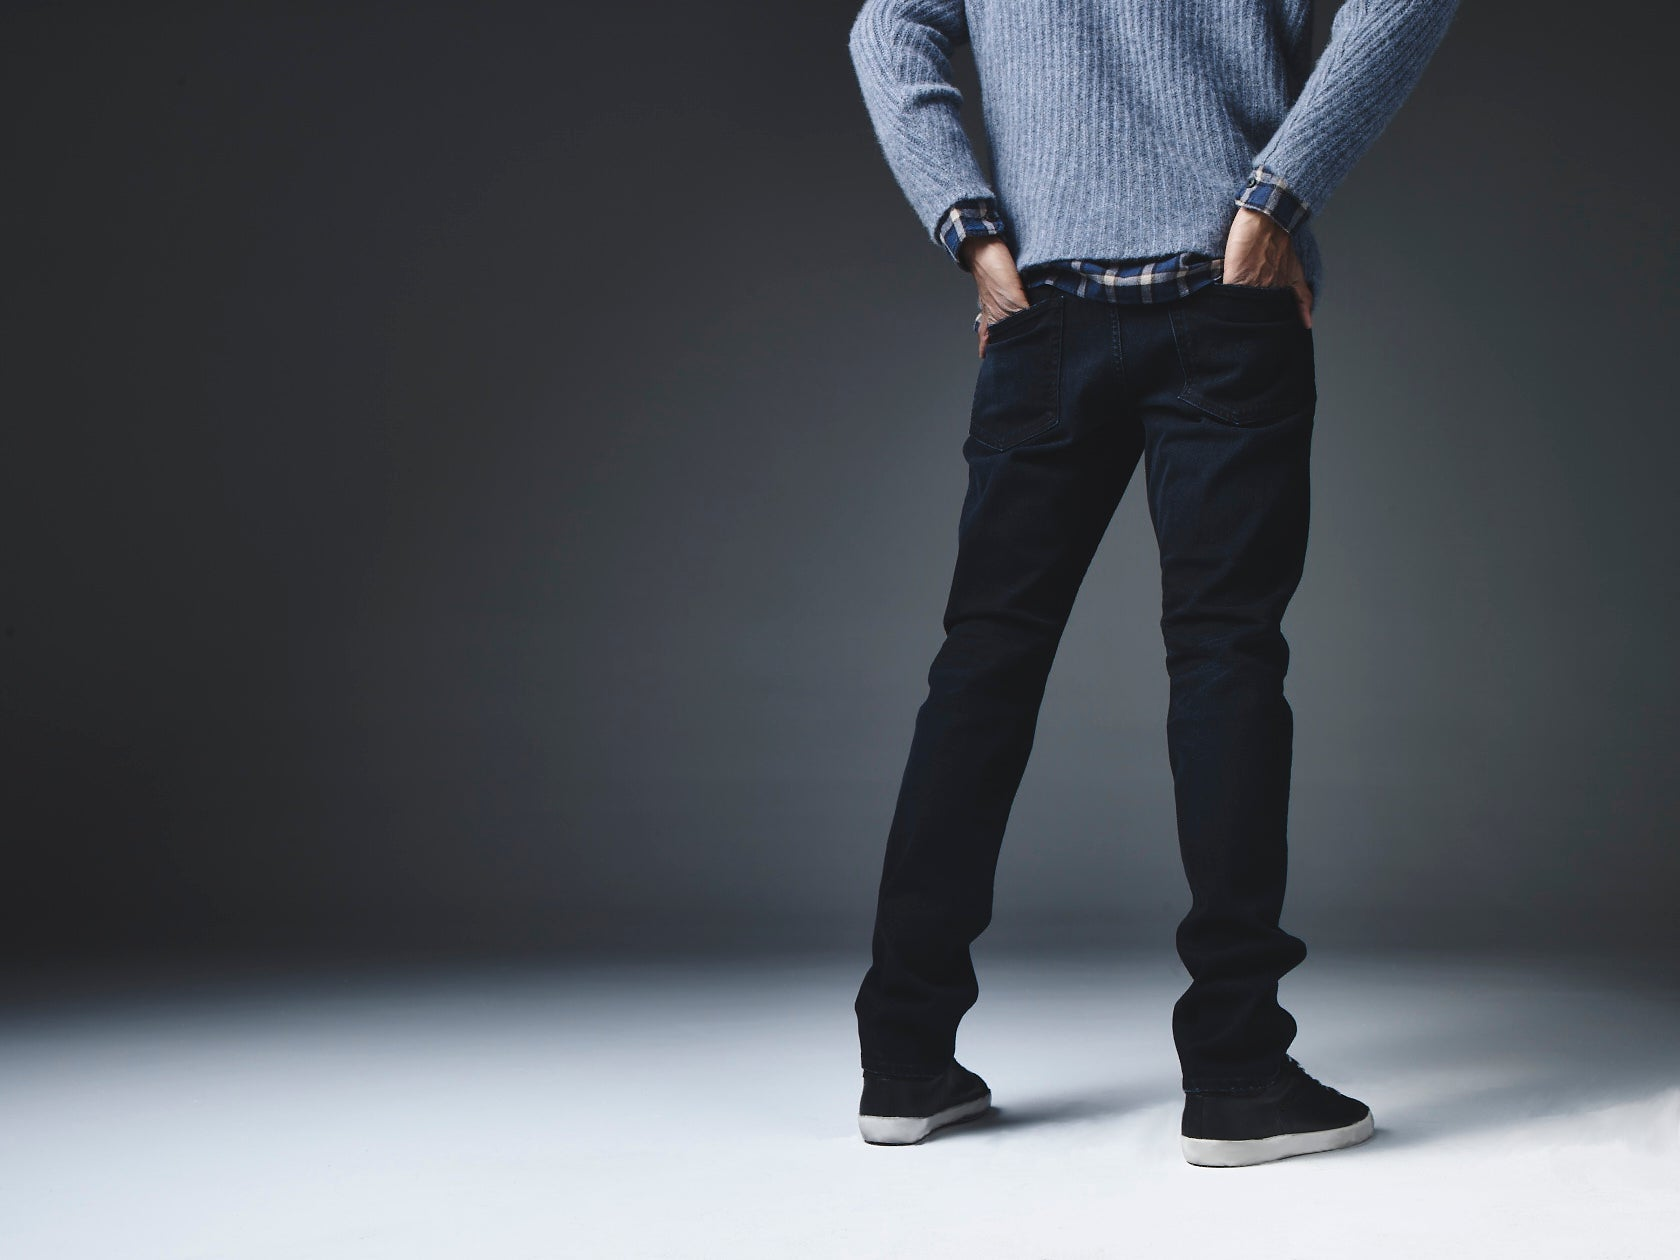 Back shot from shoulder down of a model standing with his hands in his back pocket against a dark background wearing a grey sweater and S.M.N Studio Bond in Shadow jeans.